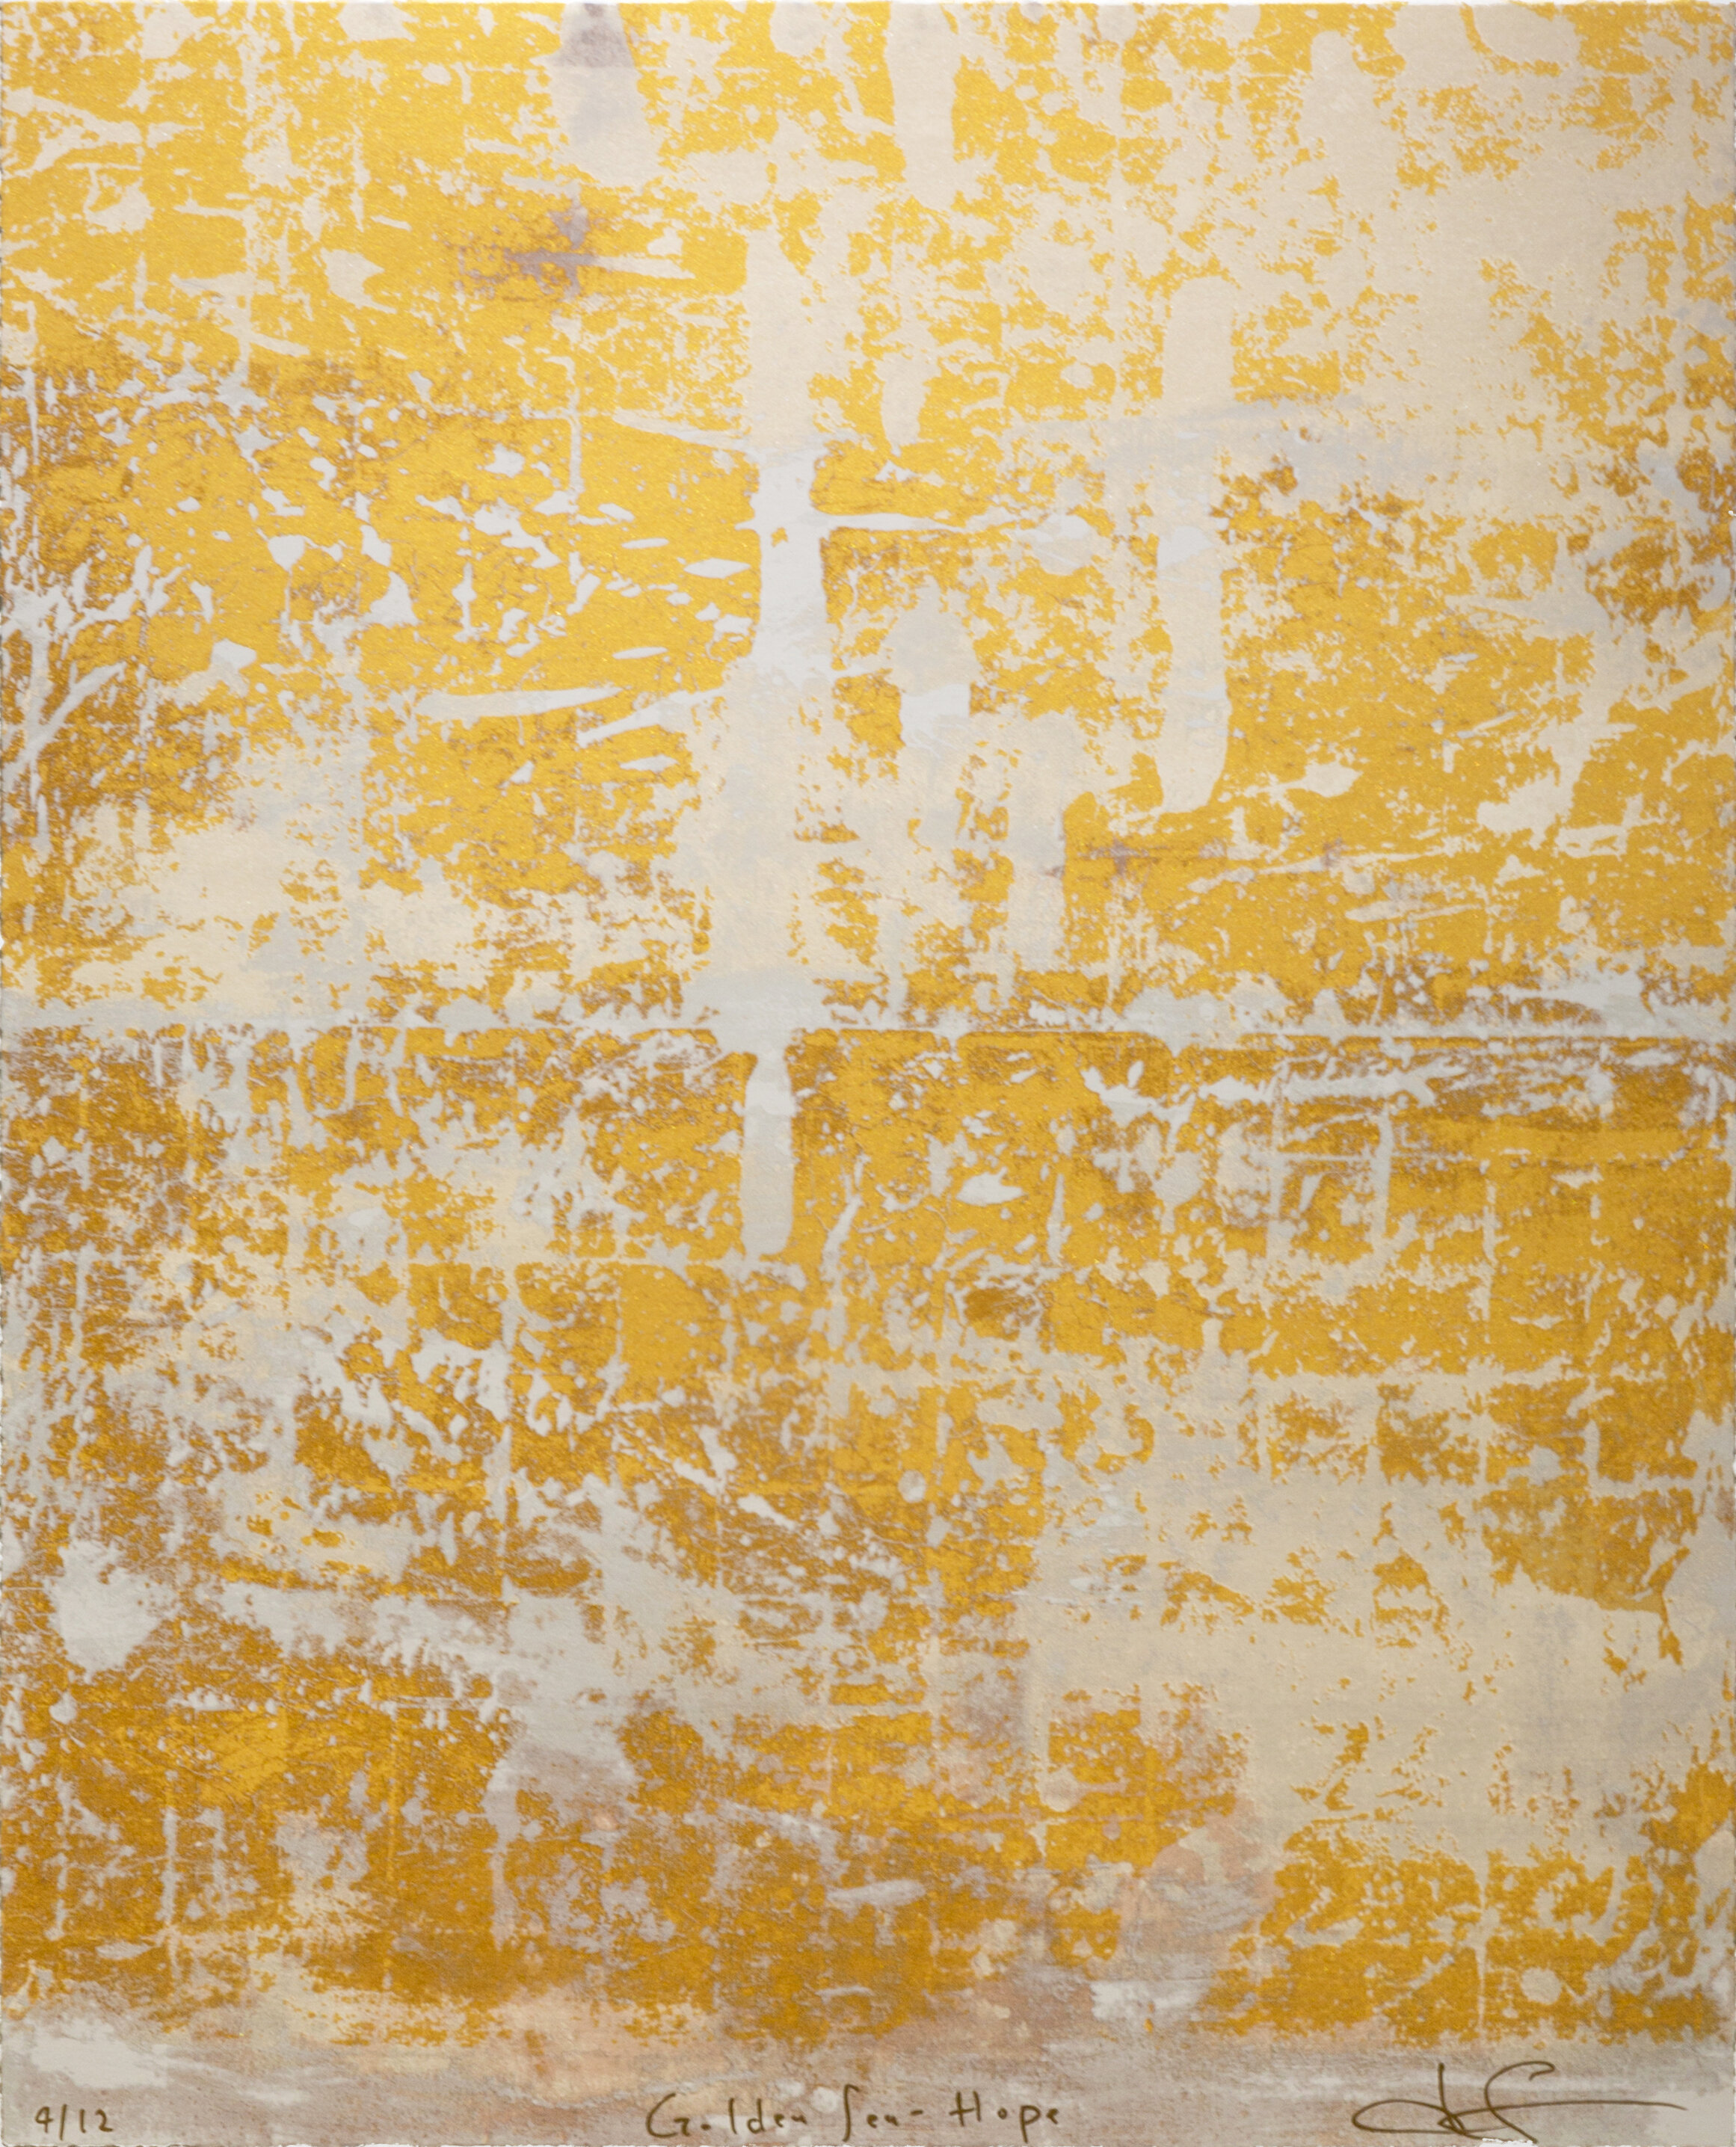 GOLDEN SEA : WHITE Silkscreen Print with gold leaf, gold powder and oyster shell powder    12 Total  e ditions   Image Size: 25 1⁄2 x 32 inches (vertical)   **Three as set: 10% discount shall be applied